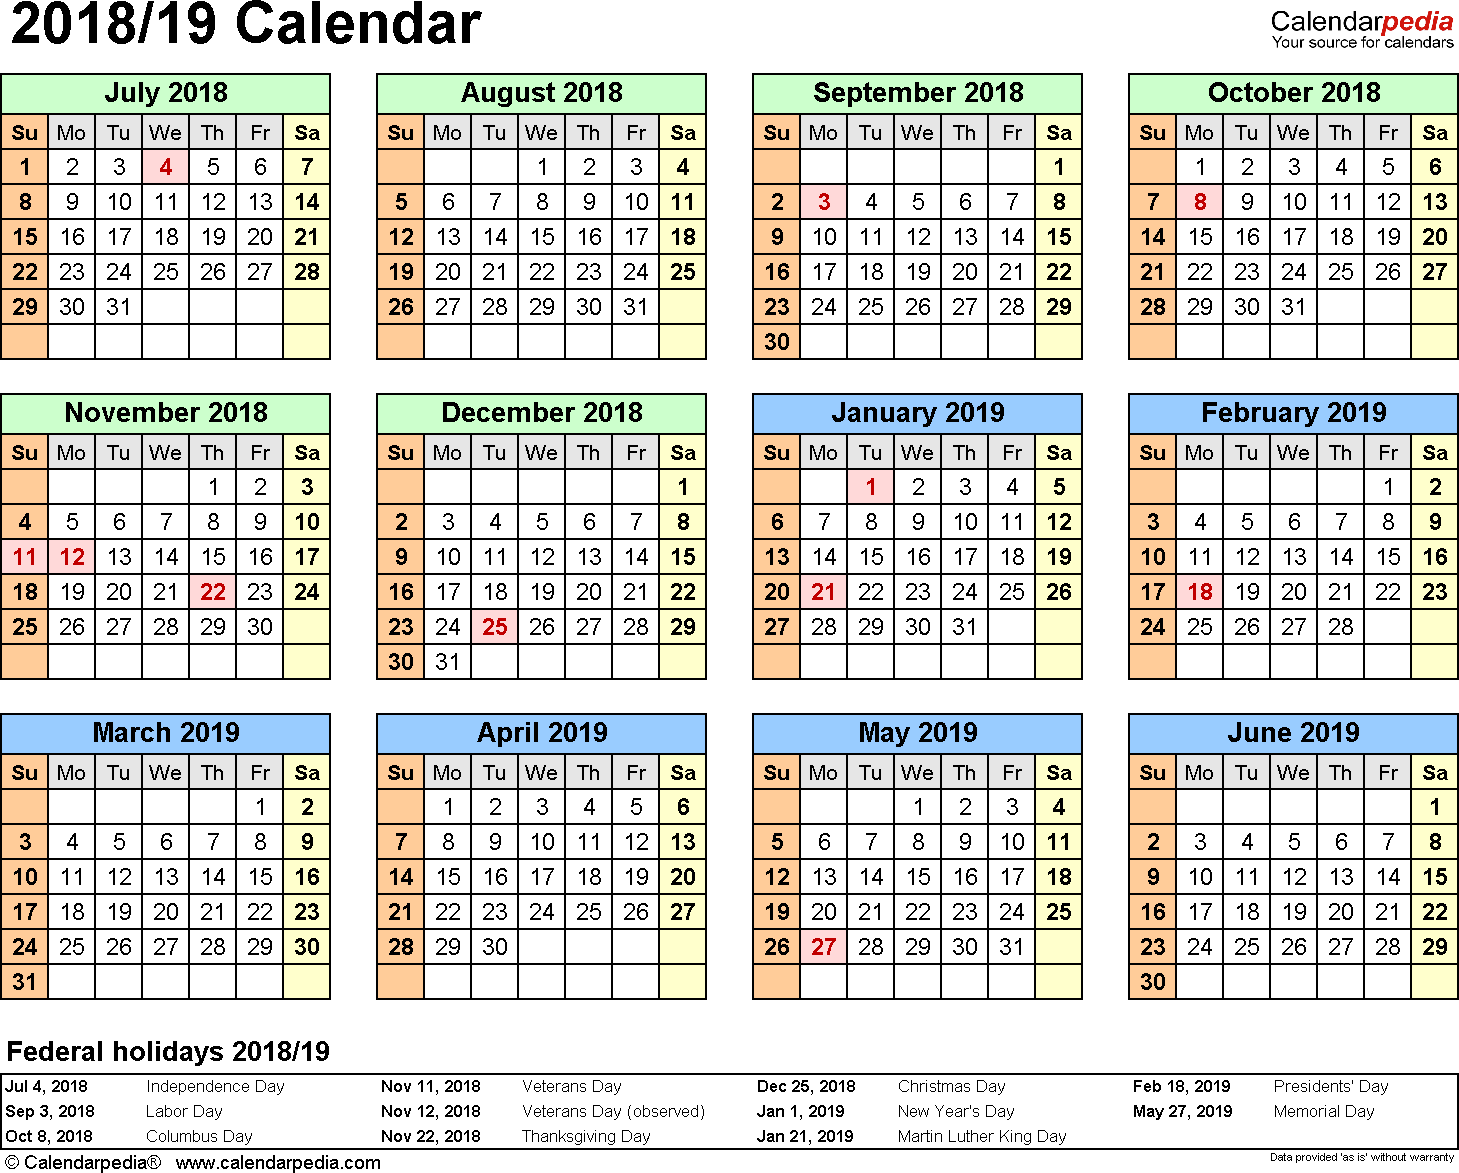 Calendar For Year 2019 New Zealand With Split 2018 19 July To June PDF Templates